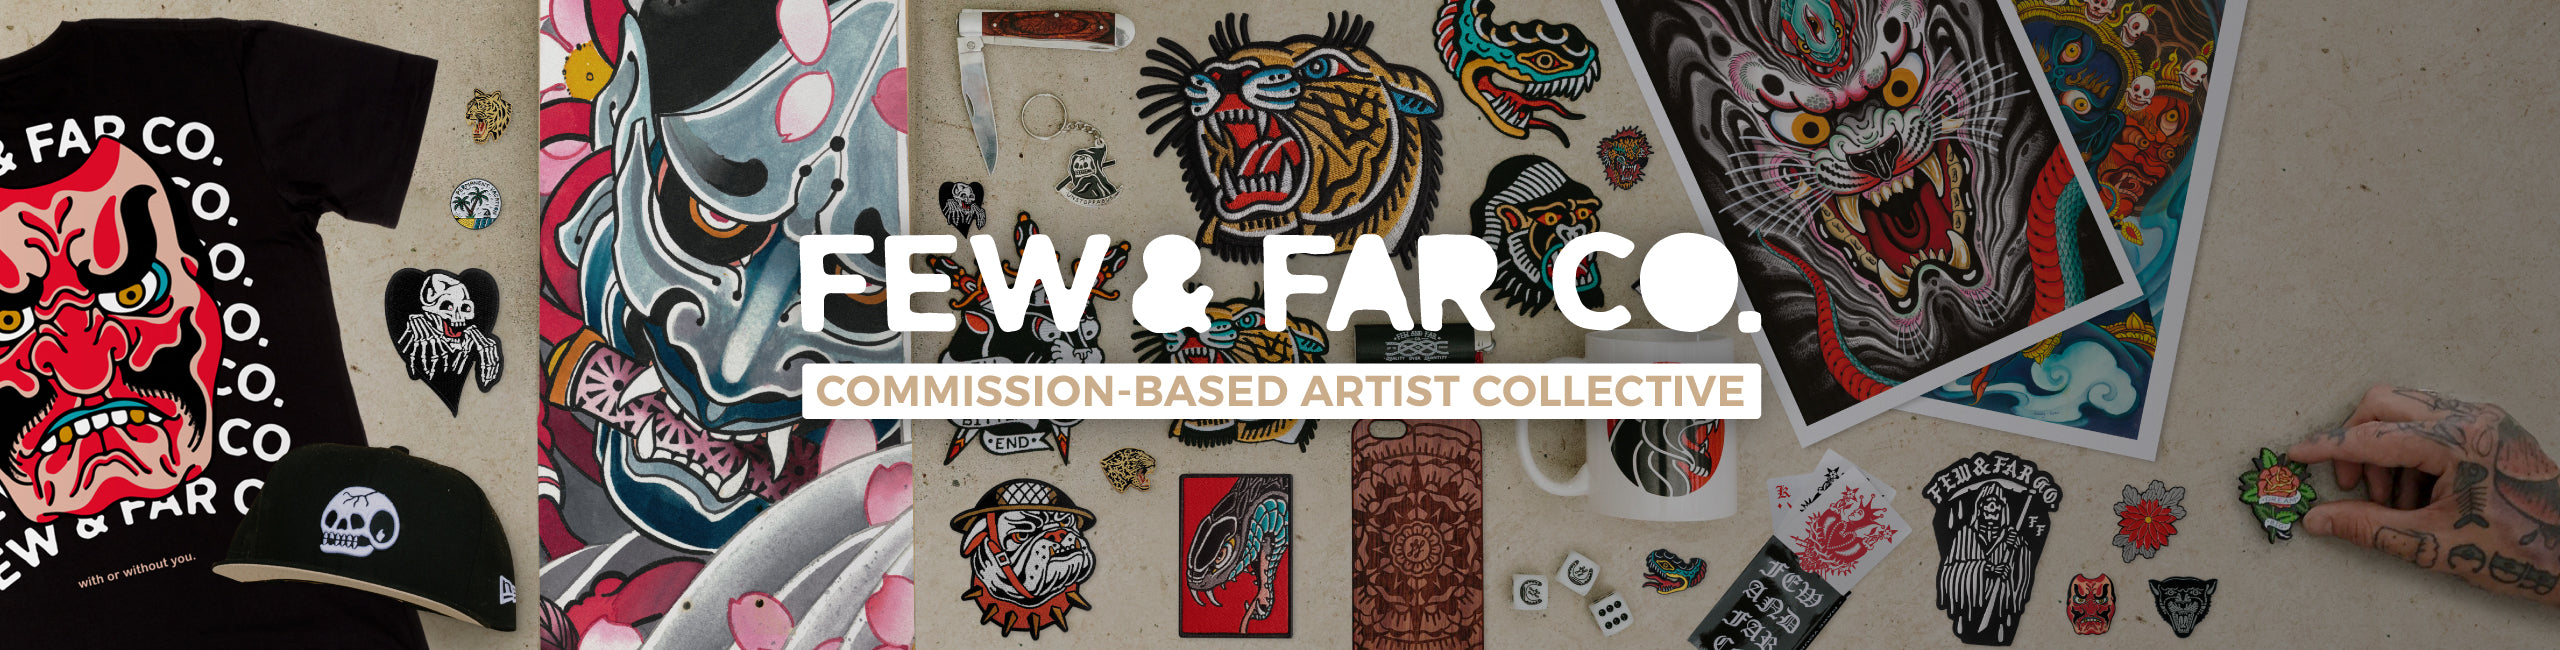 Few and Far Co Commission Based Artist Collective